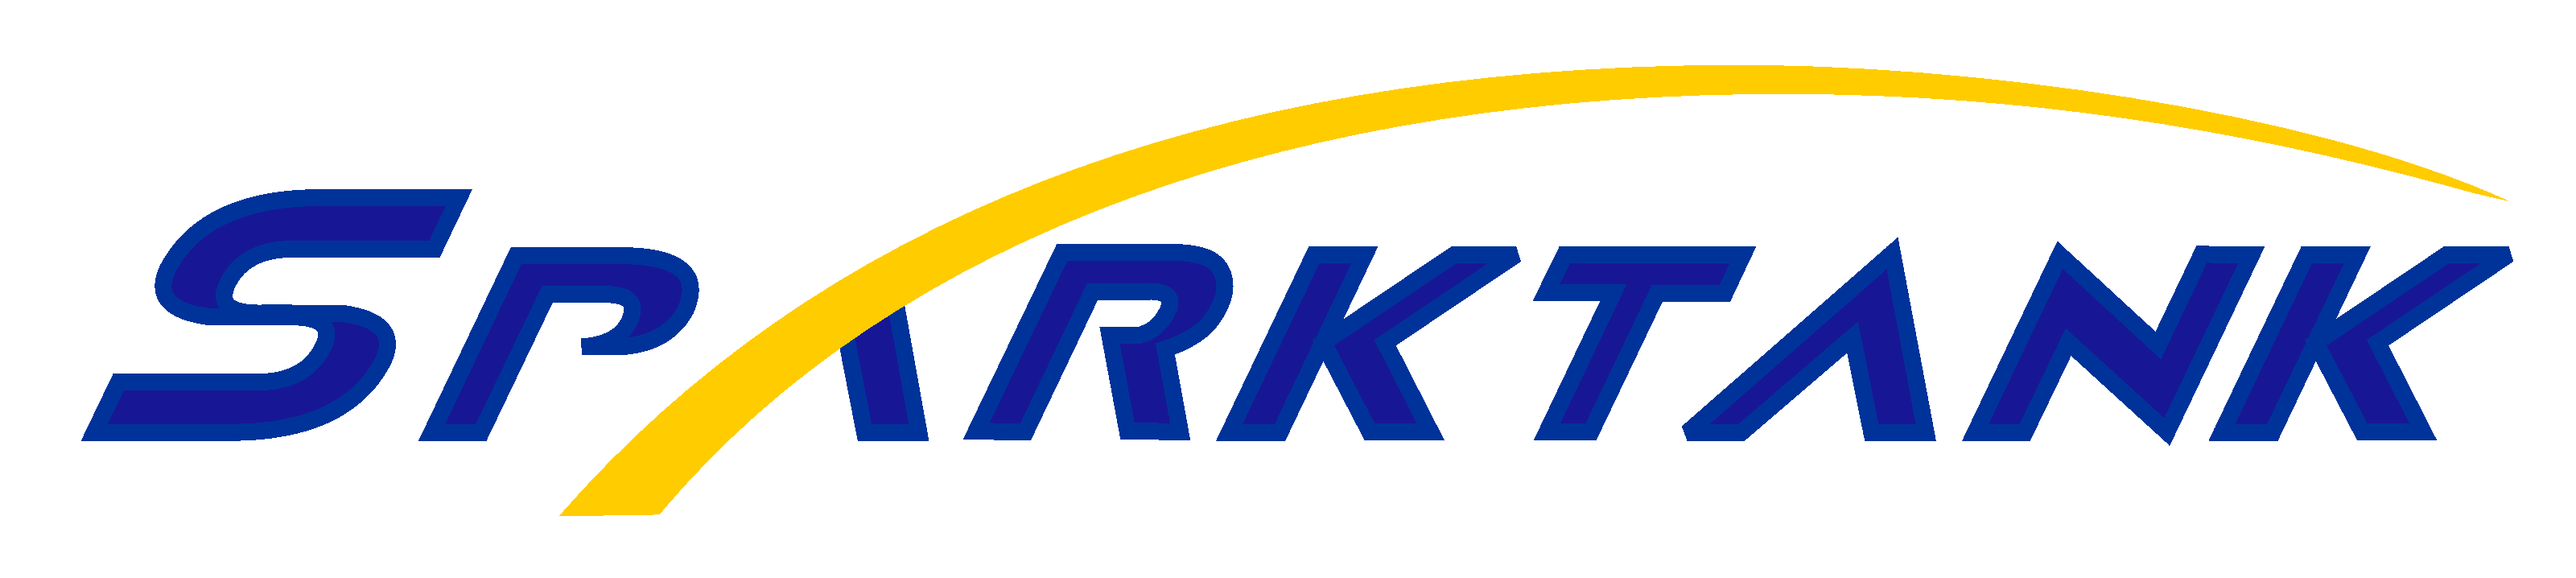 SparkTank is a trusted provider of coworking office space in the Riverside, California.